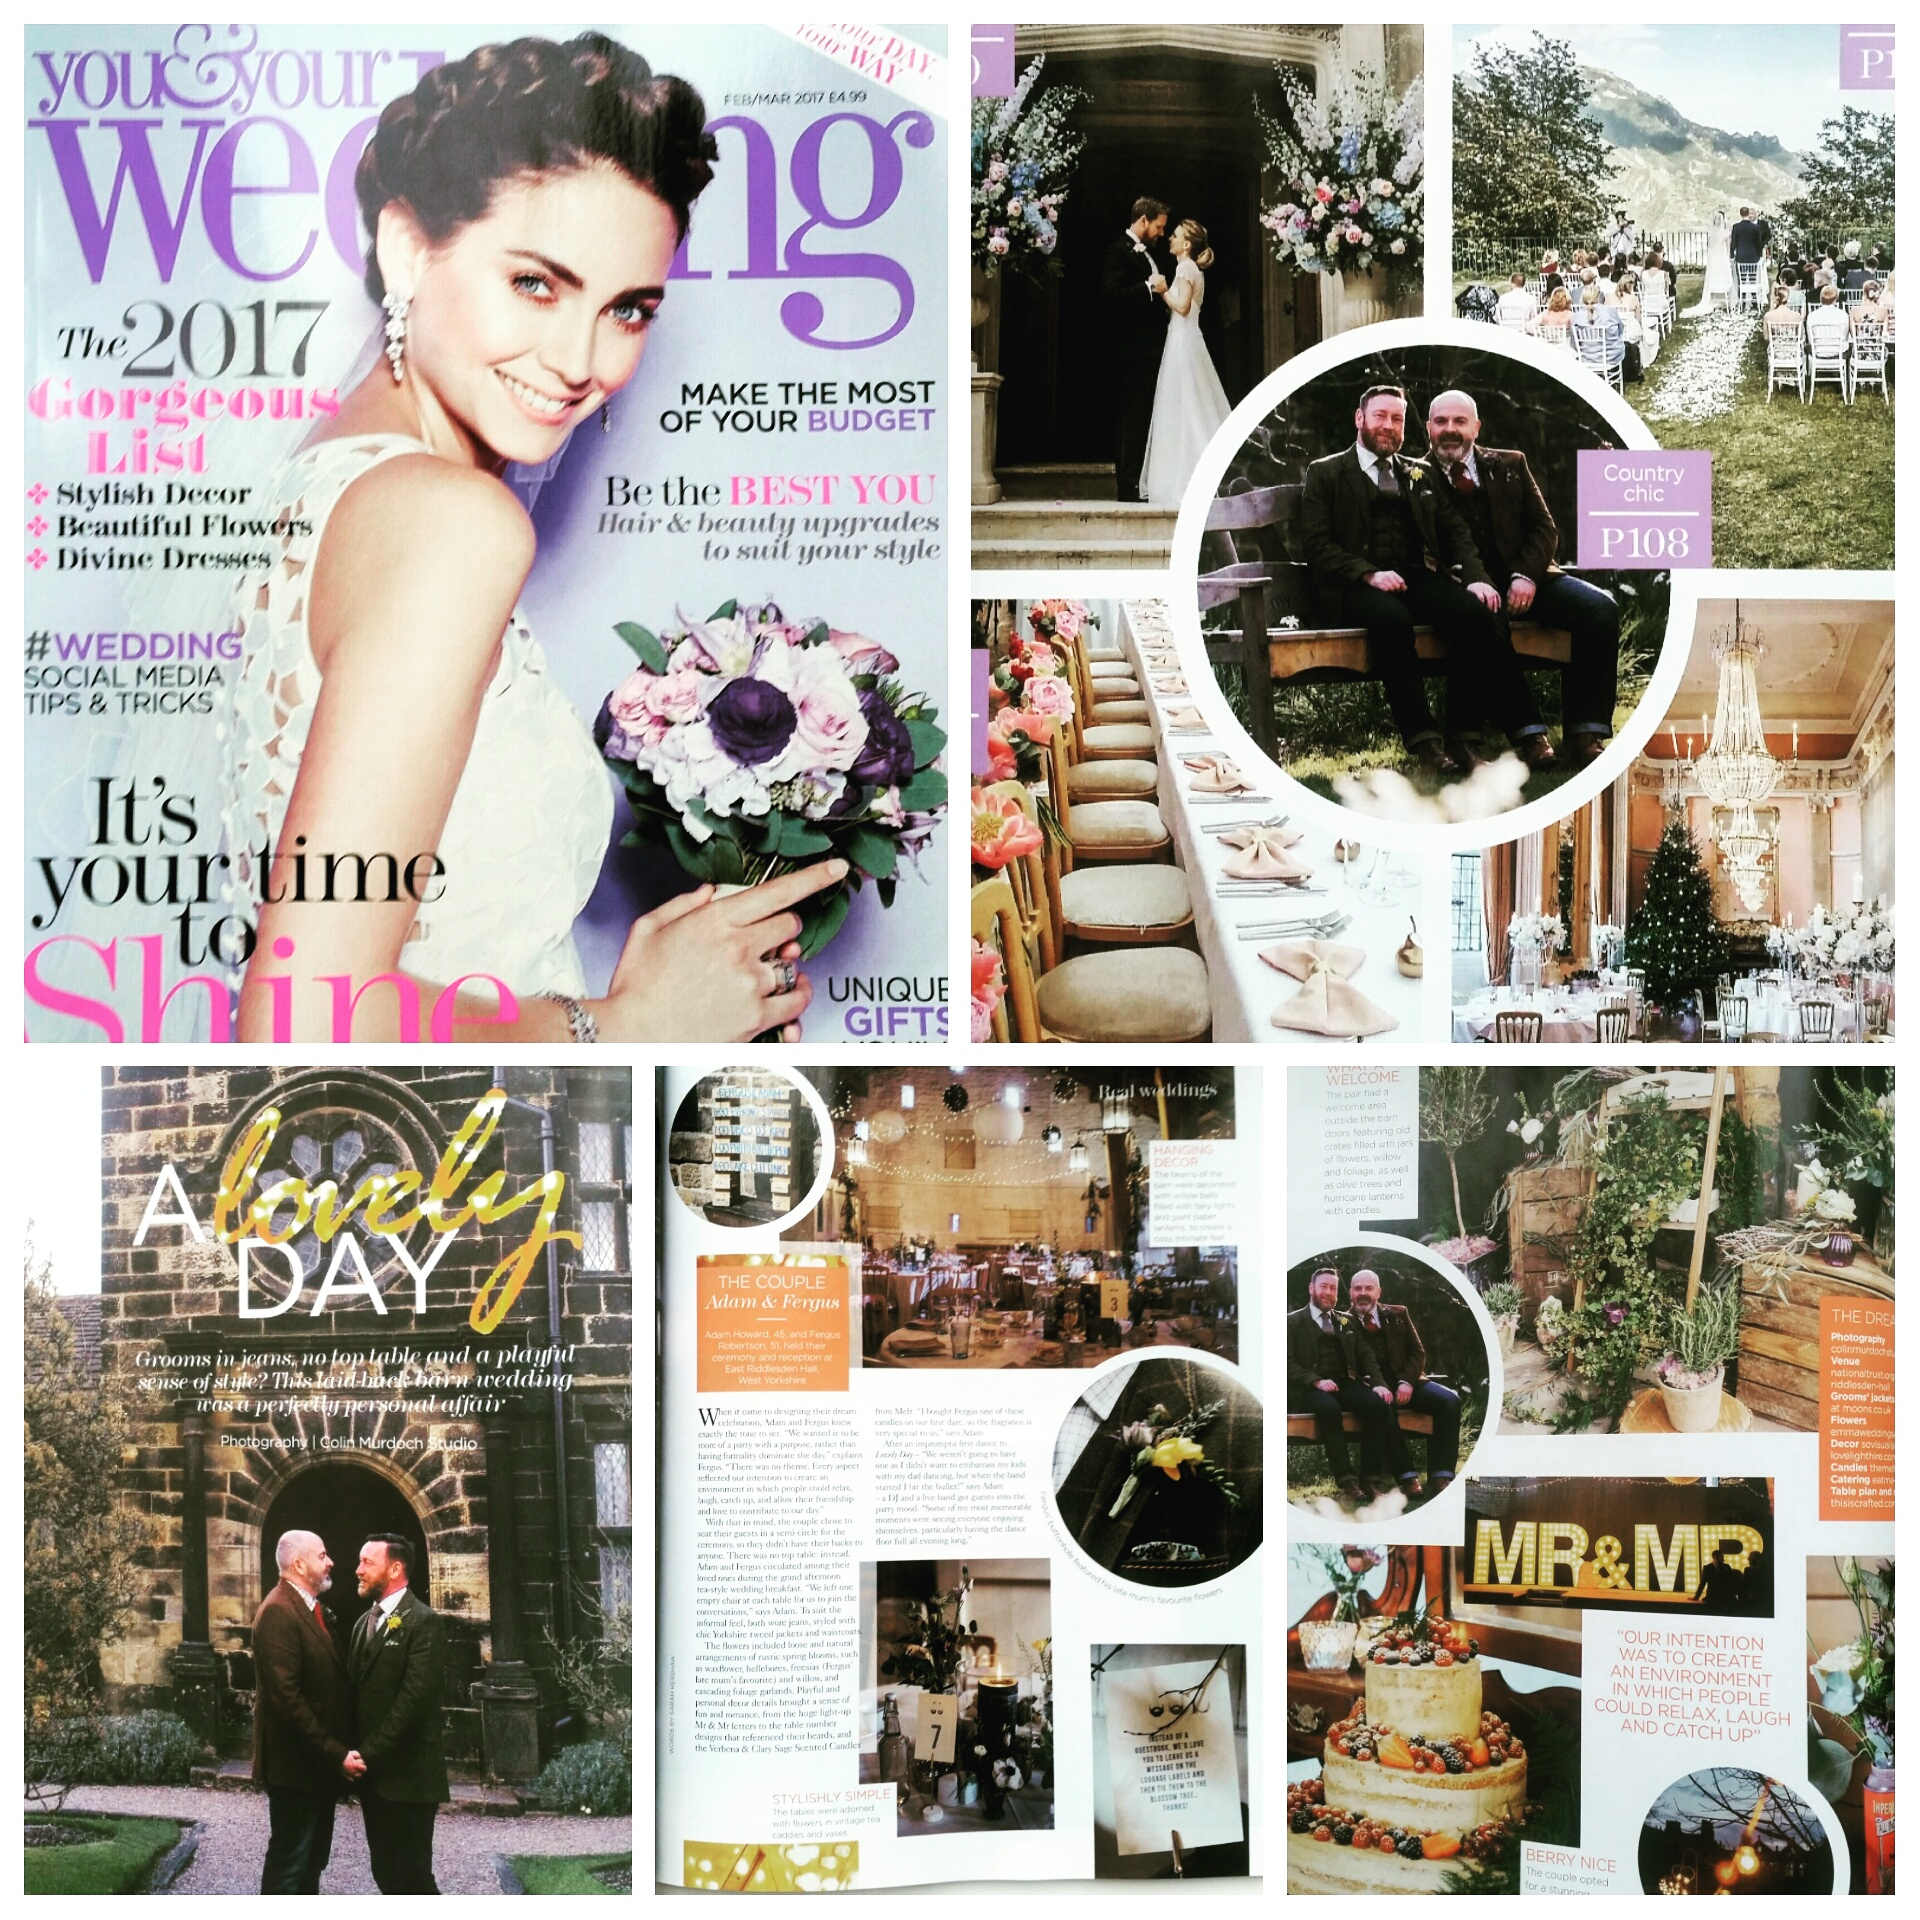 You and Your wedding mag article feature